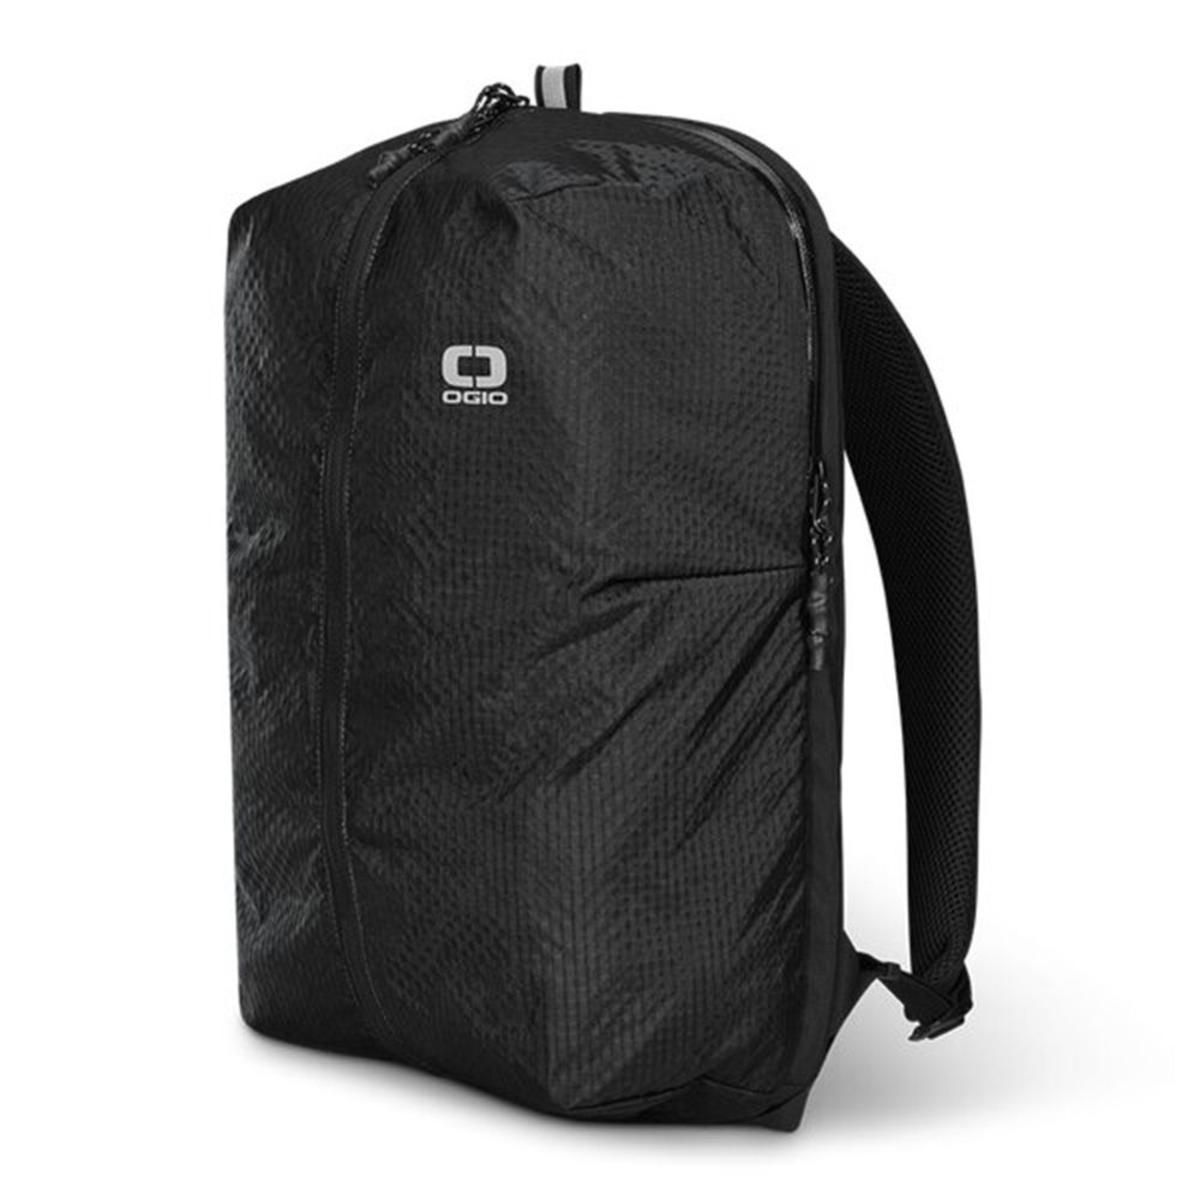 Ogio Fuse 20 Backpack